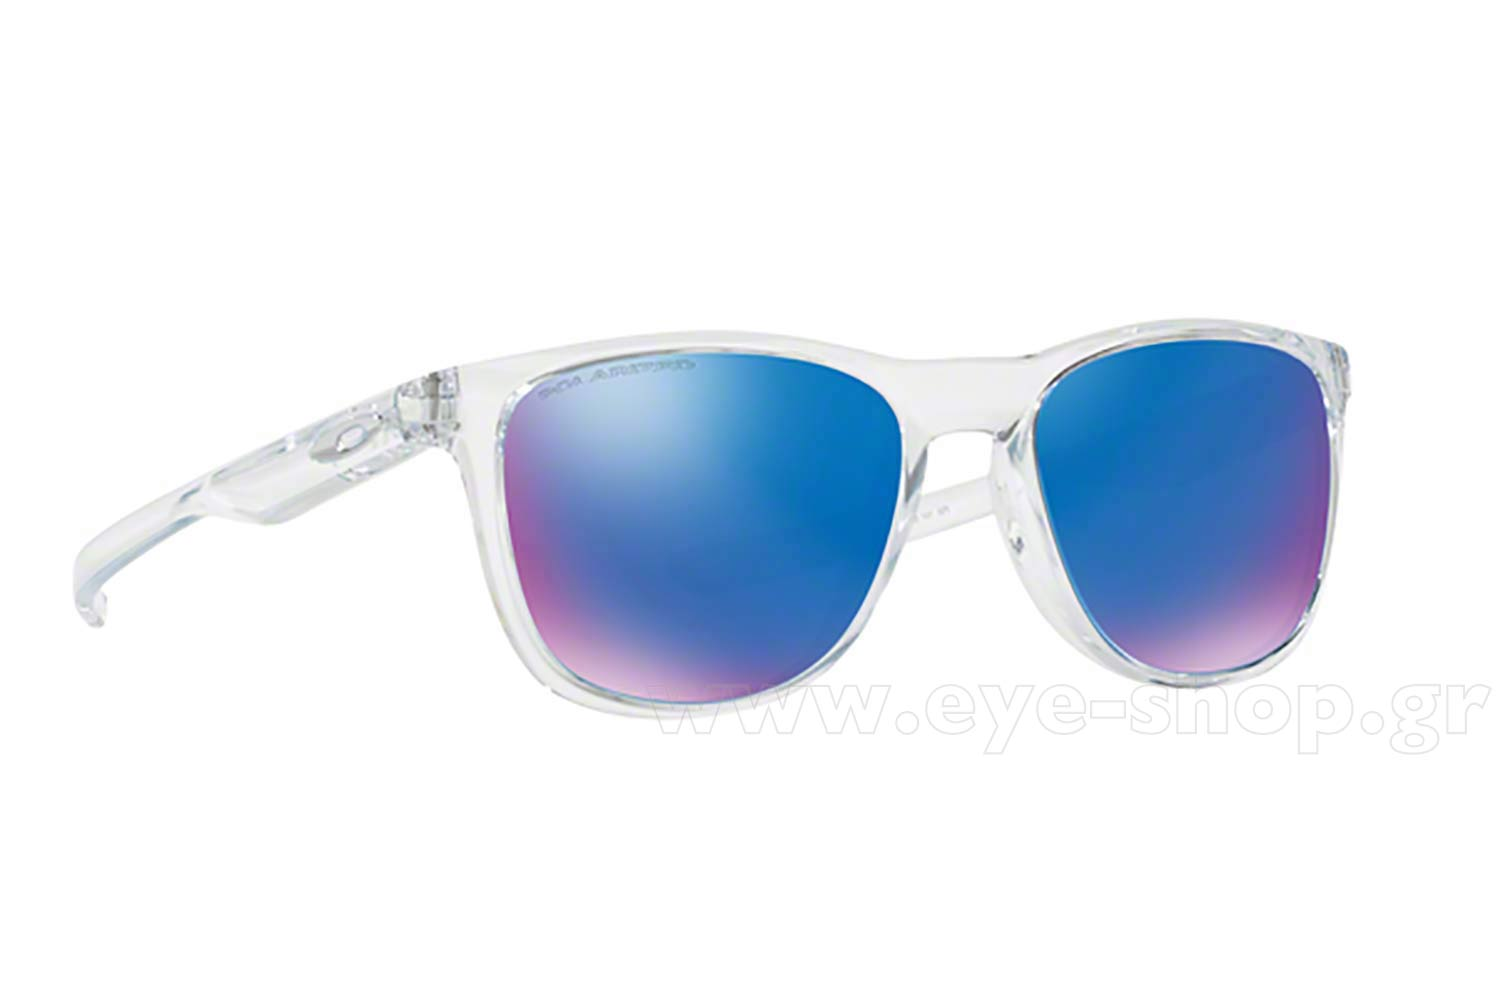 e414cf8fee Oakley Trillbe X Iridium Polarized Sunglasses